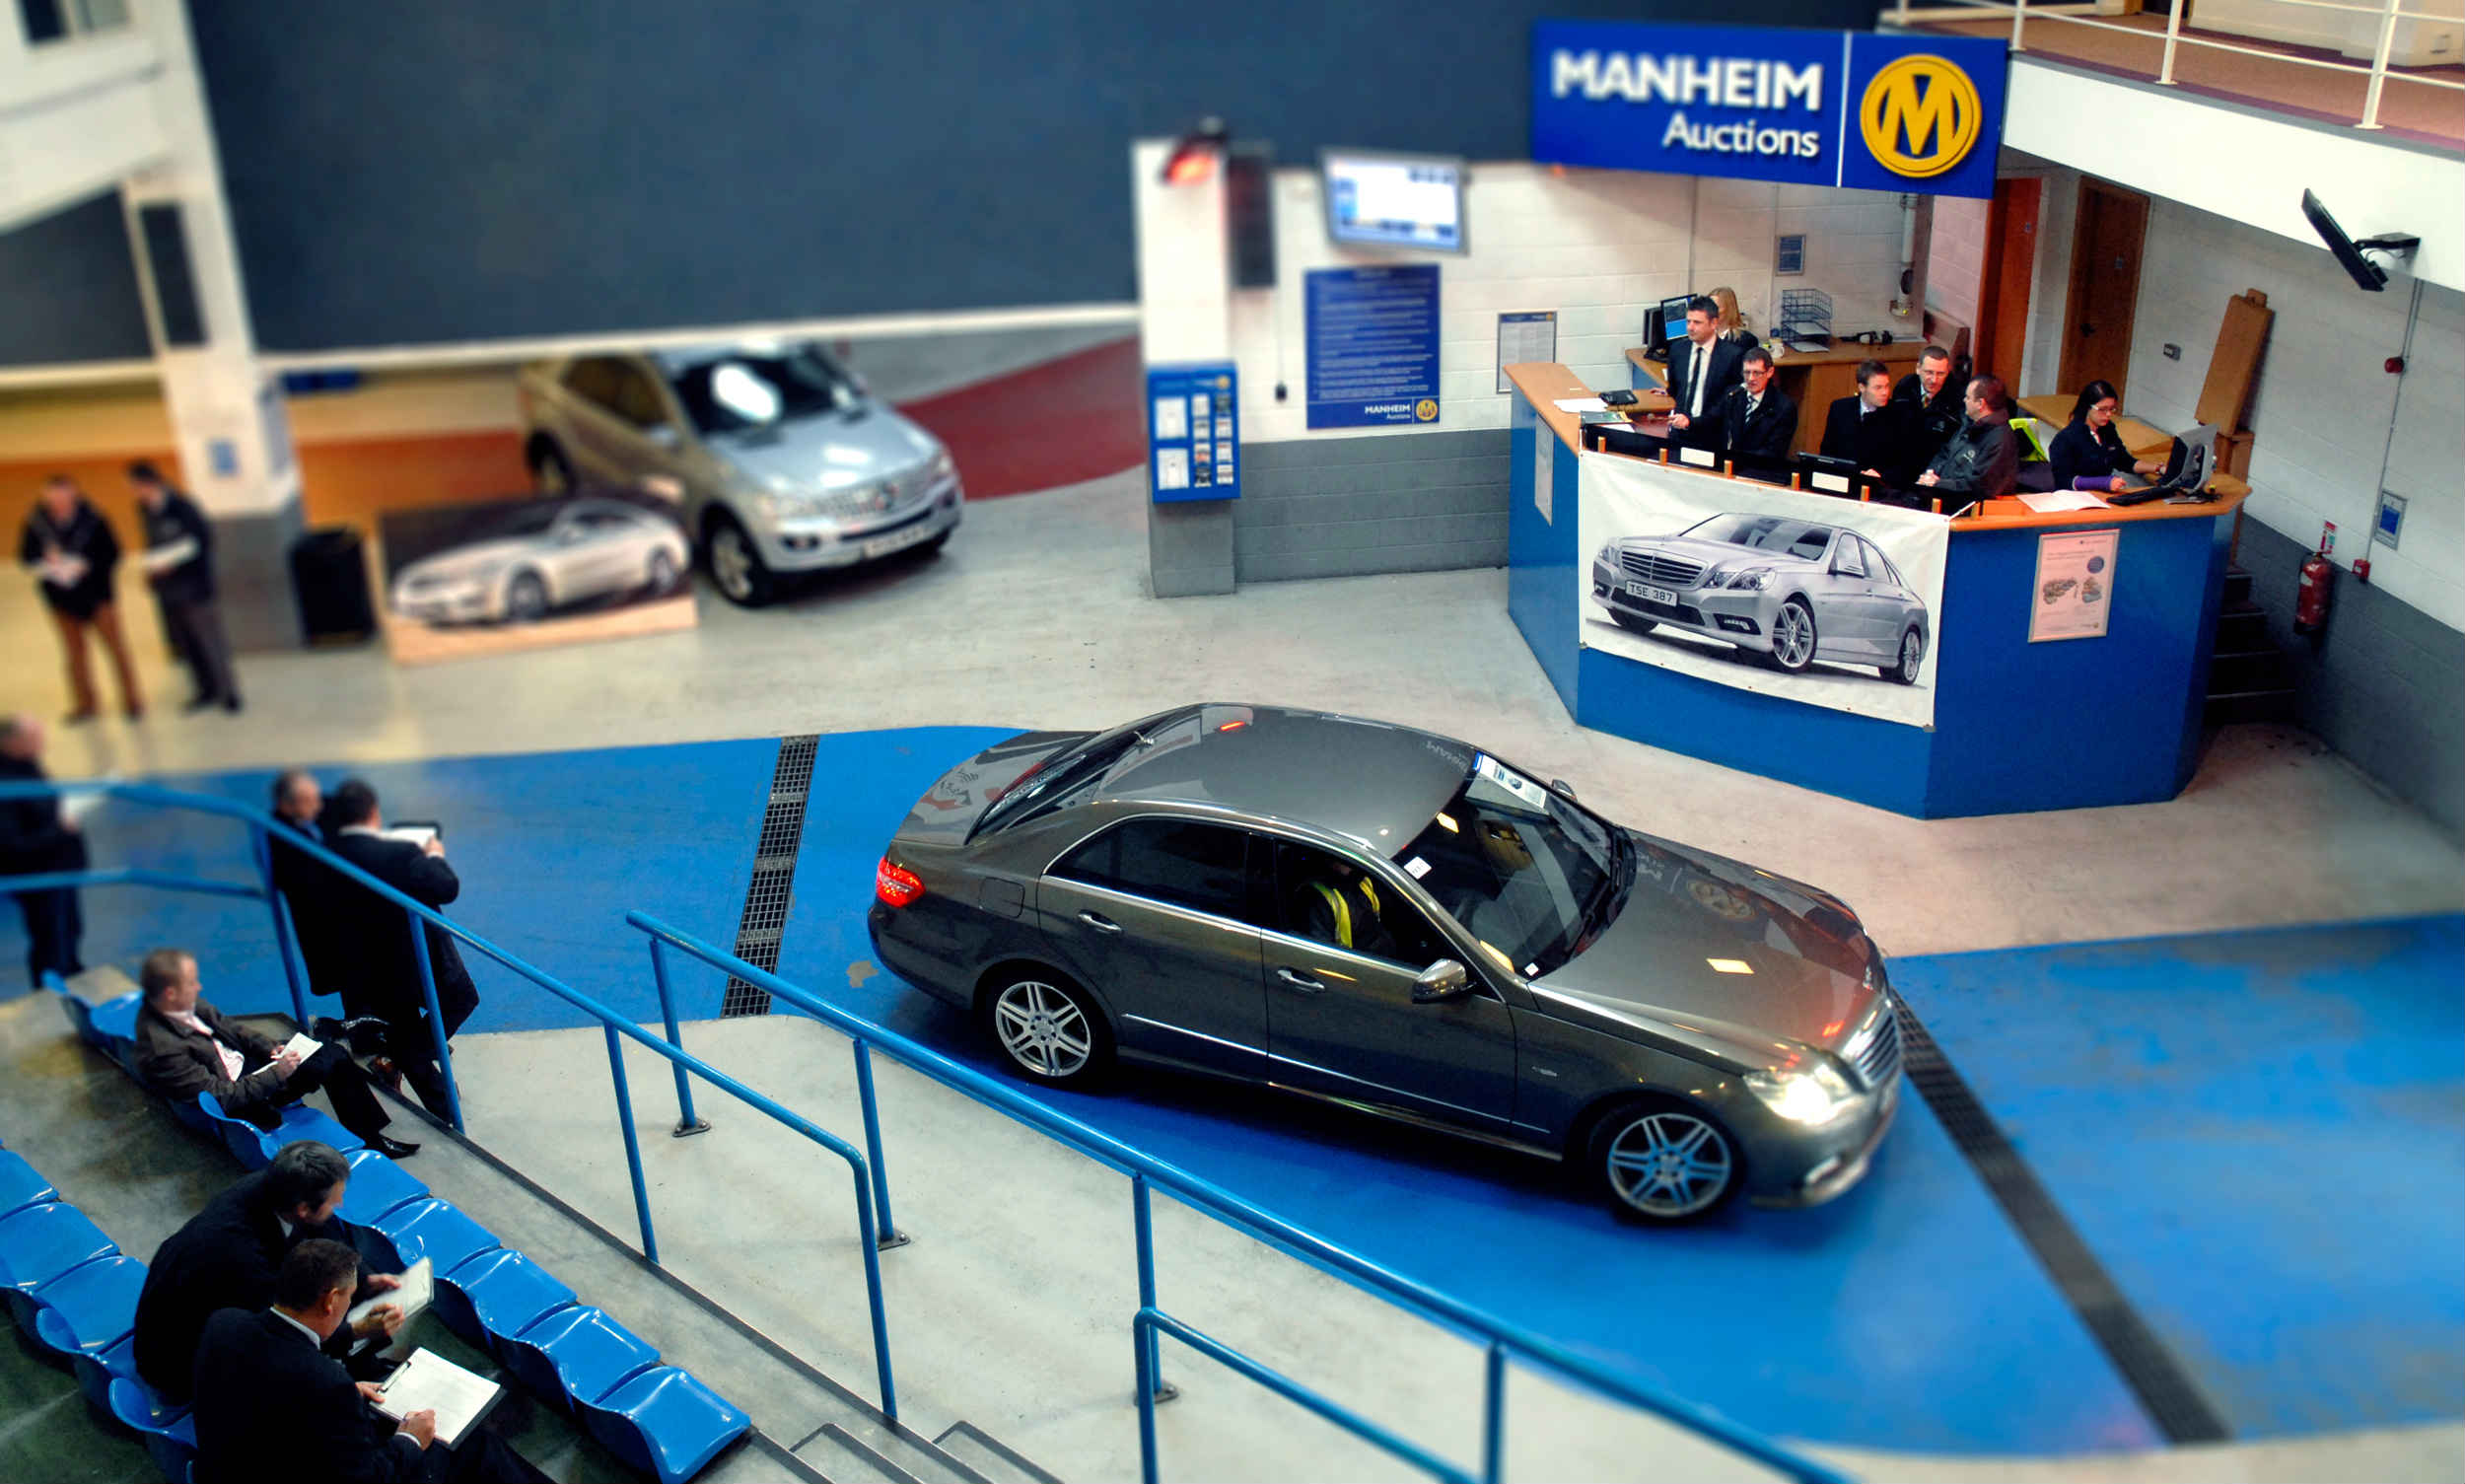 Closed car auction at Manheim